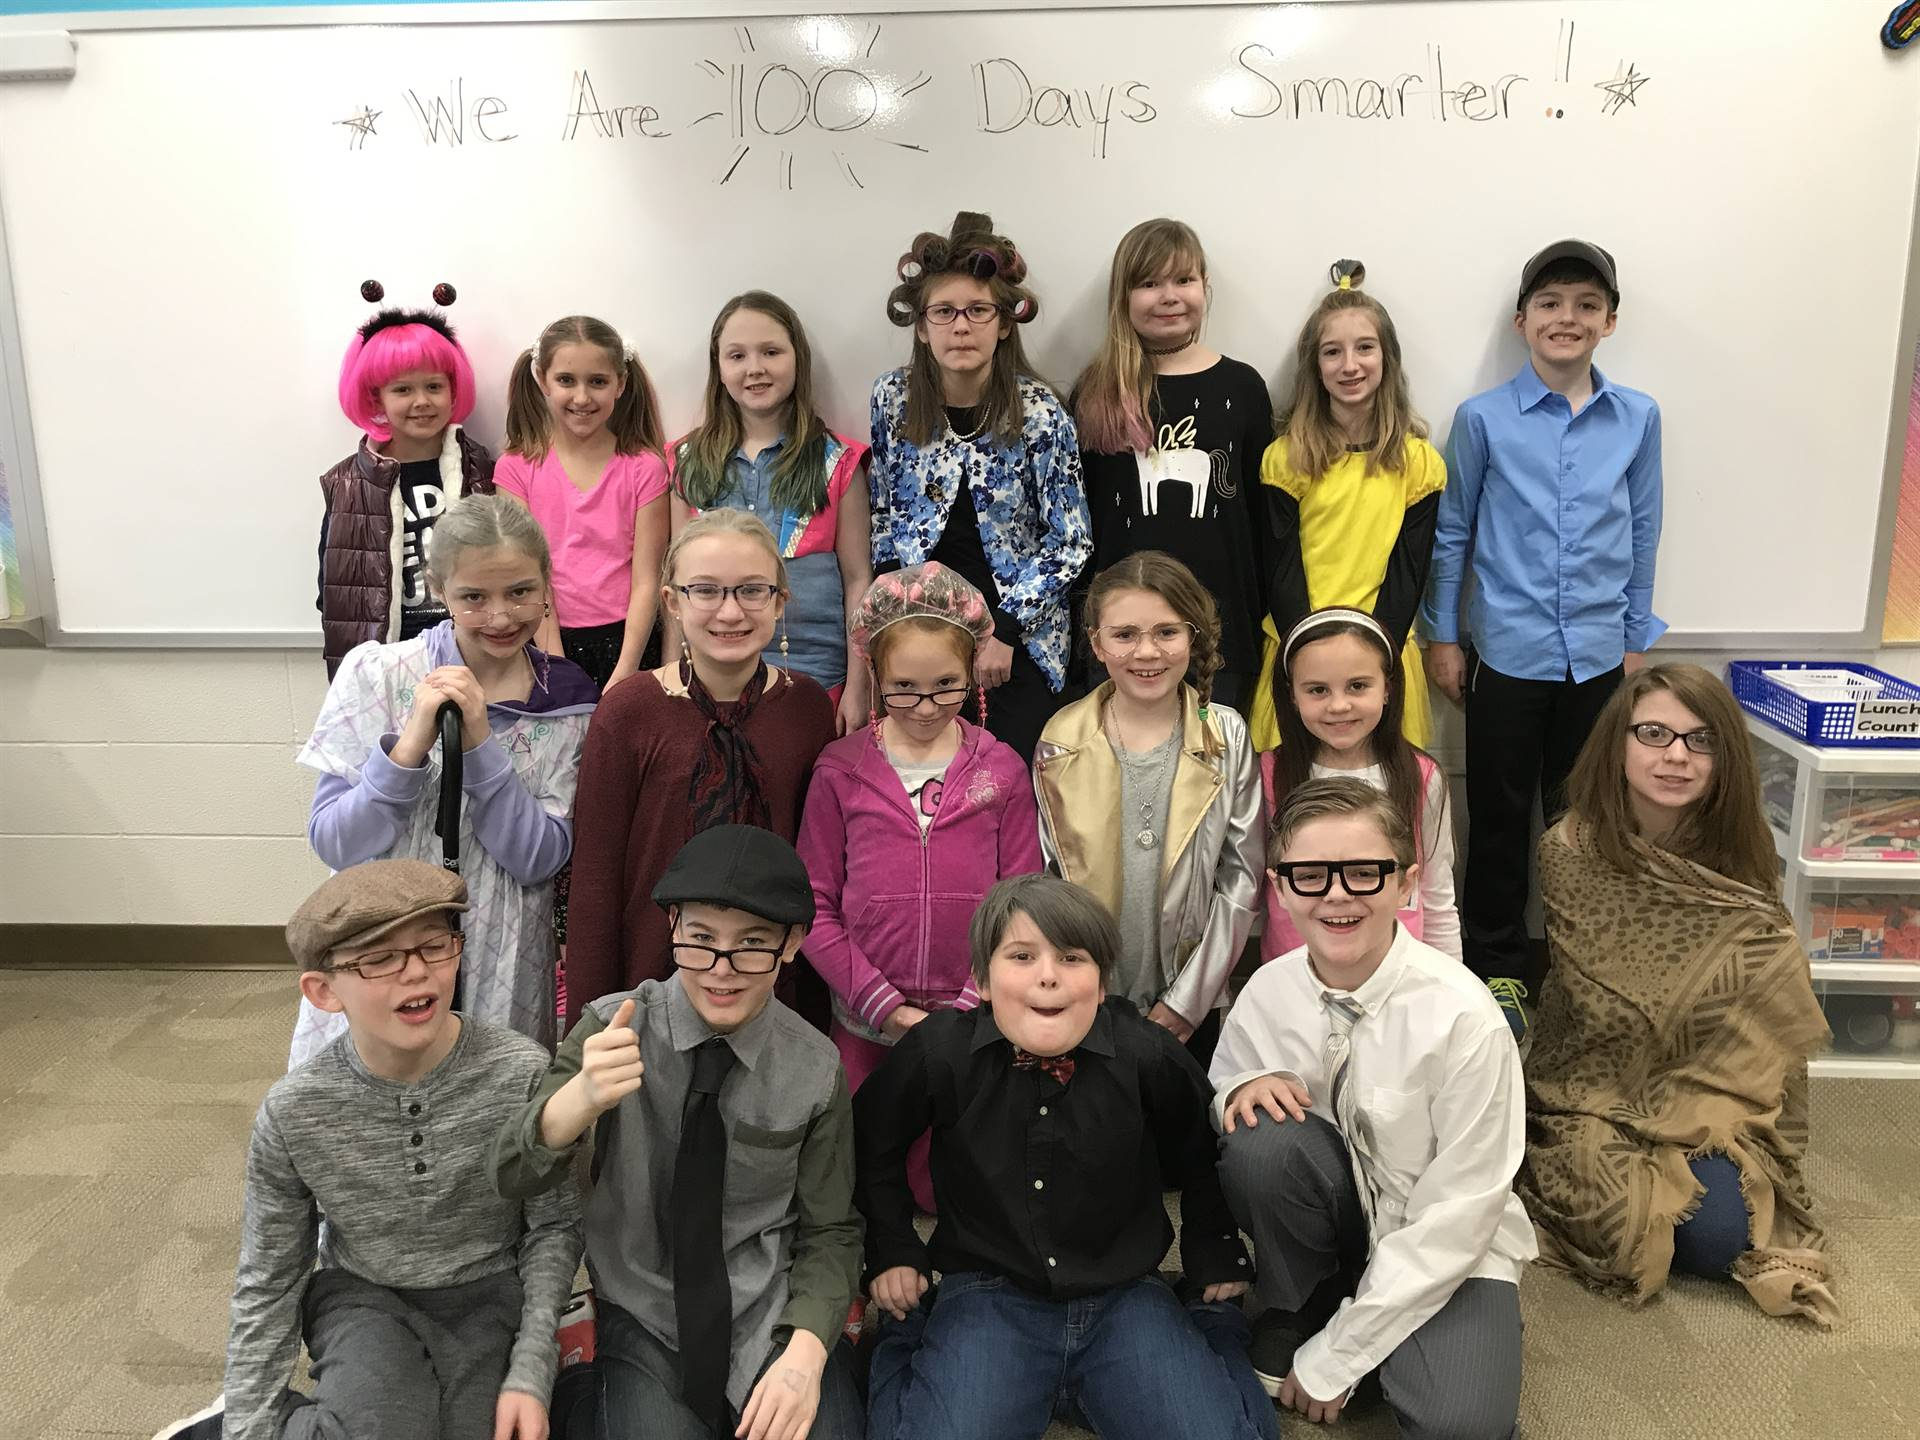 Mrs. Dressler's students dress up for the 100th Day of School